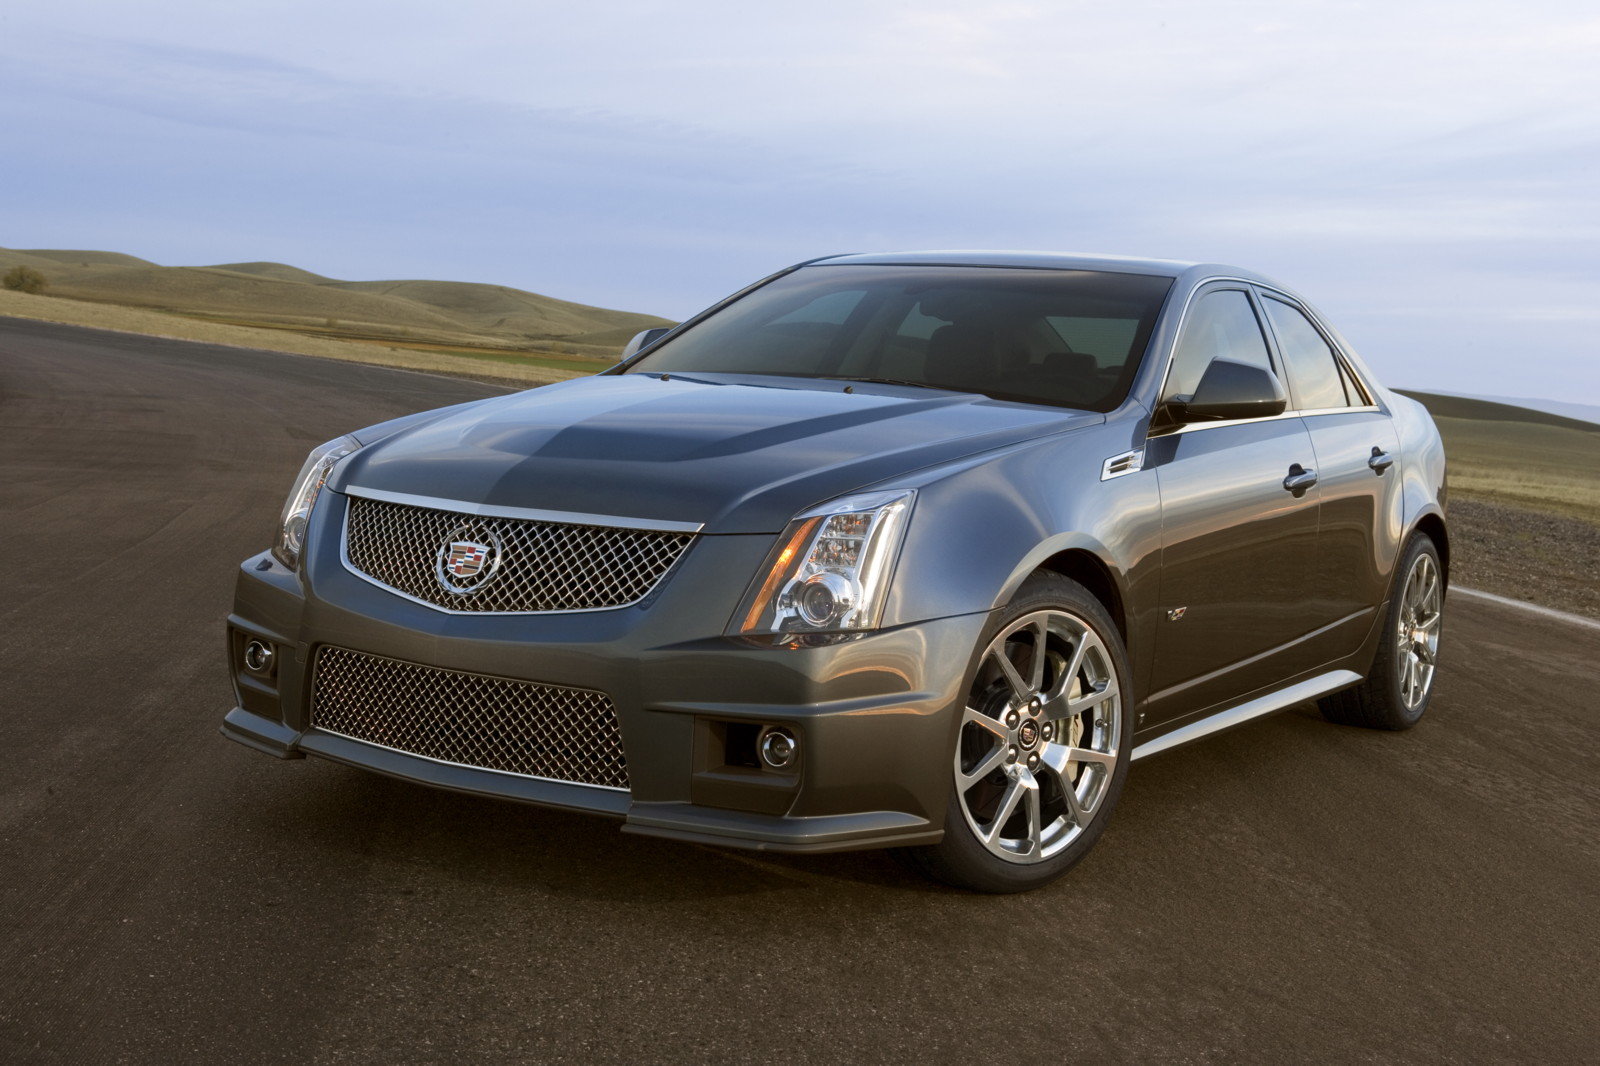 2010 cadillac cts v review ratings specs prices and - Cadillac cts v coupe specs ...